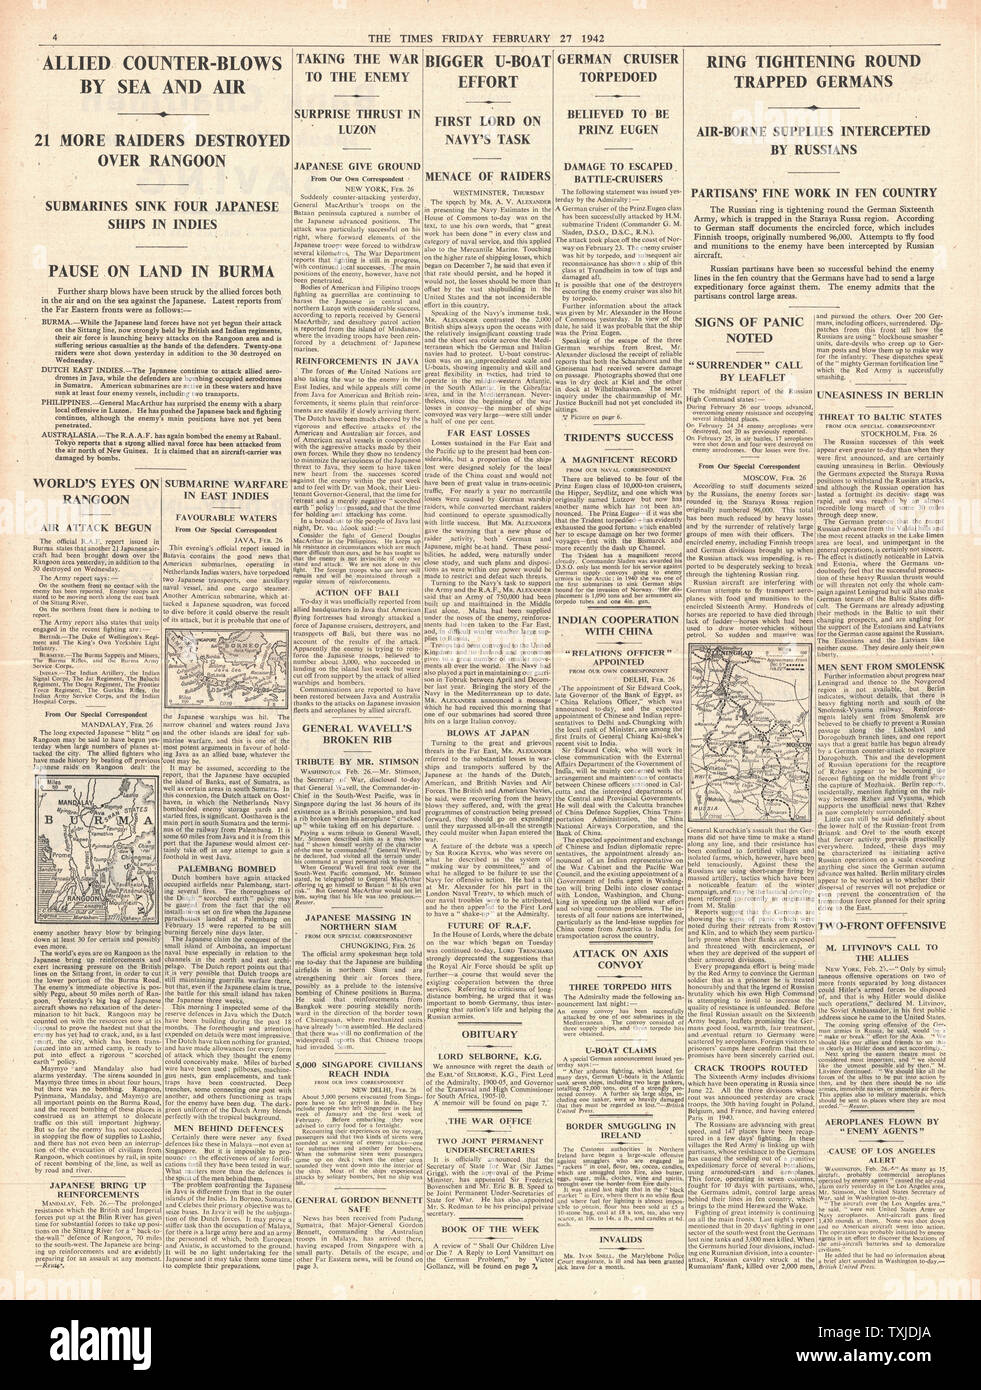 1942 page 4 The Times Battle for Burma Stock Photo